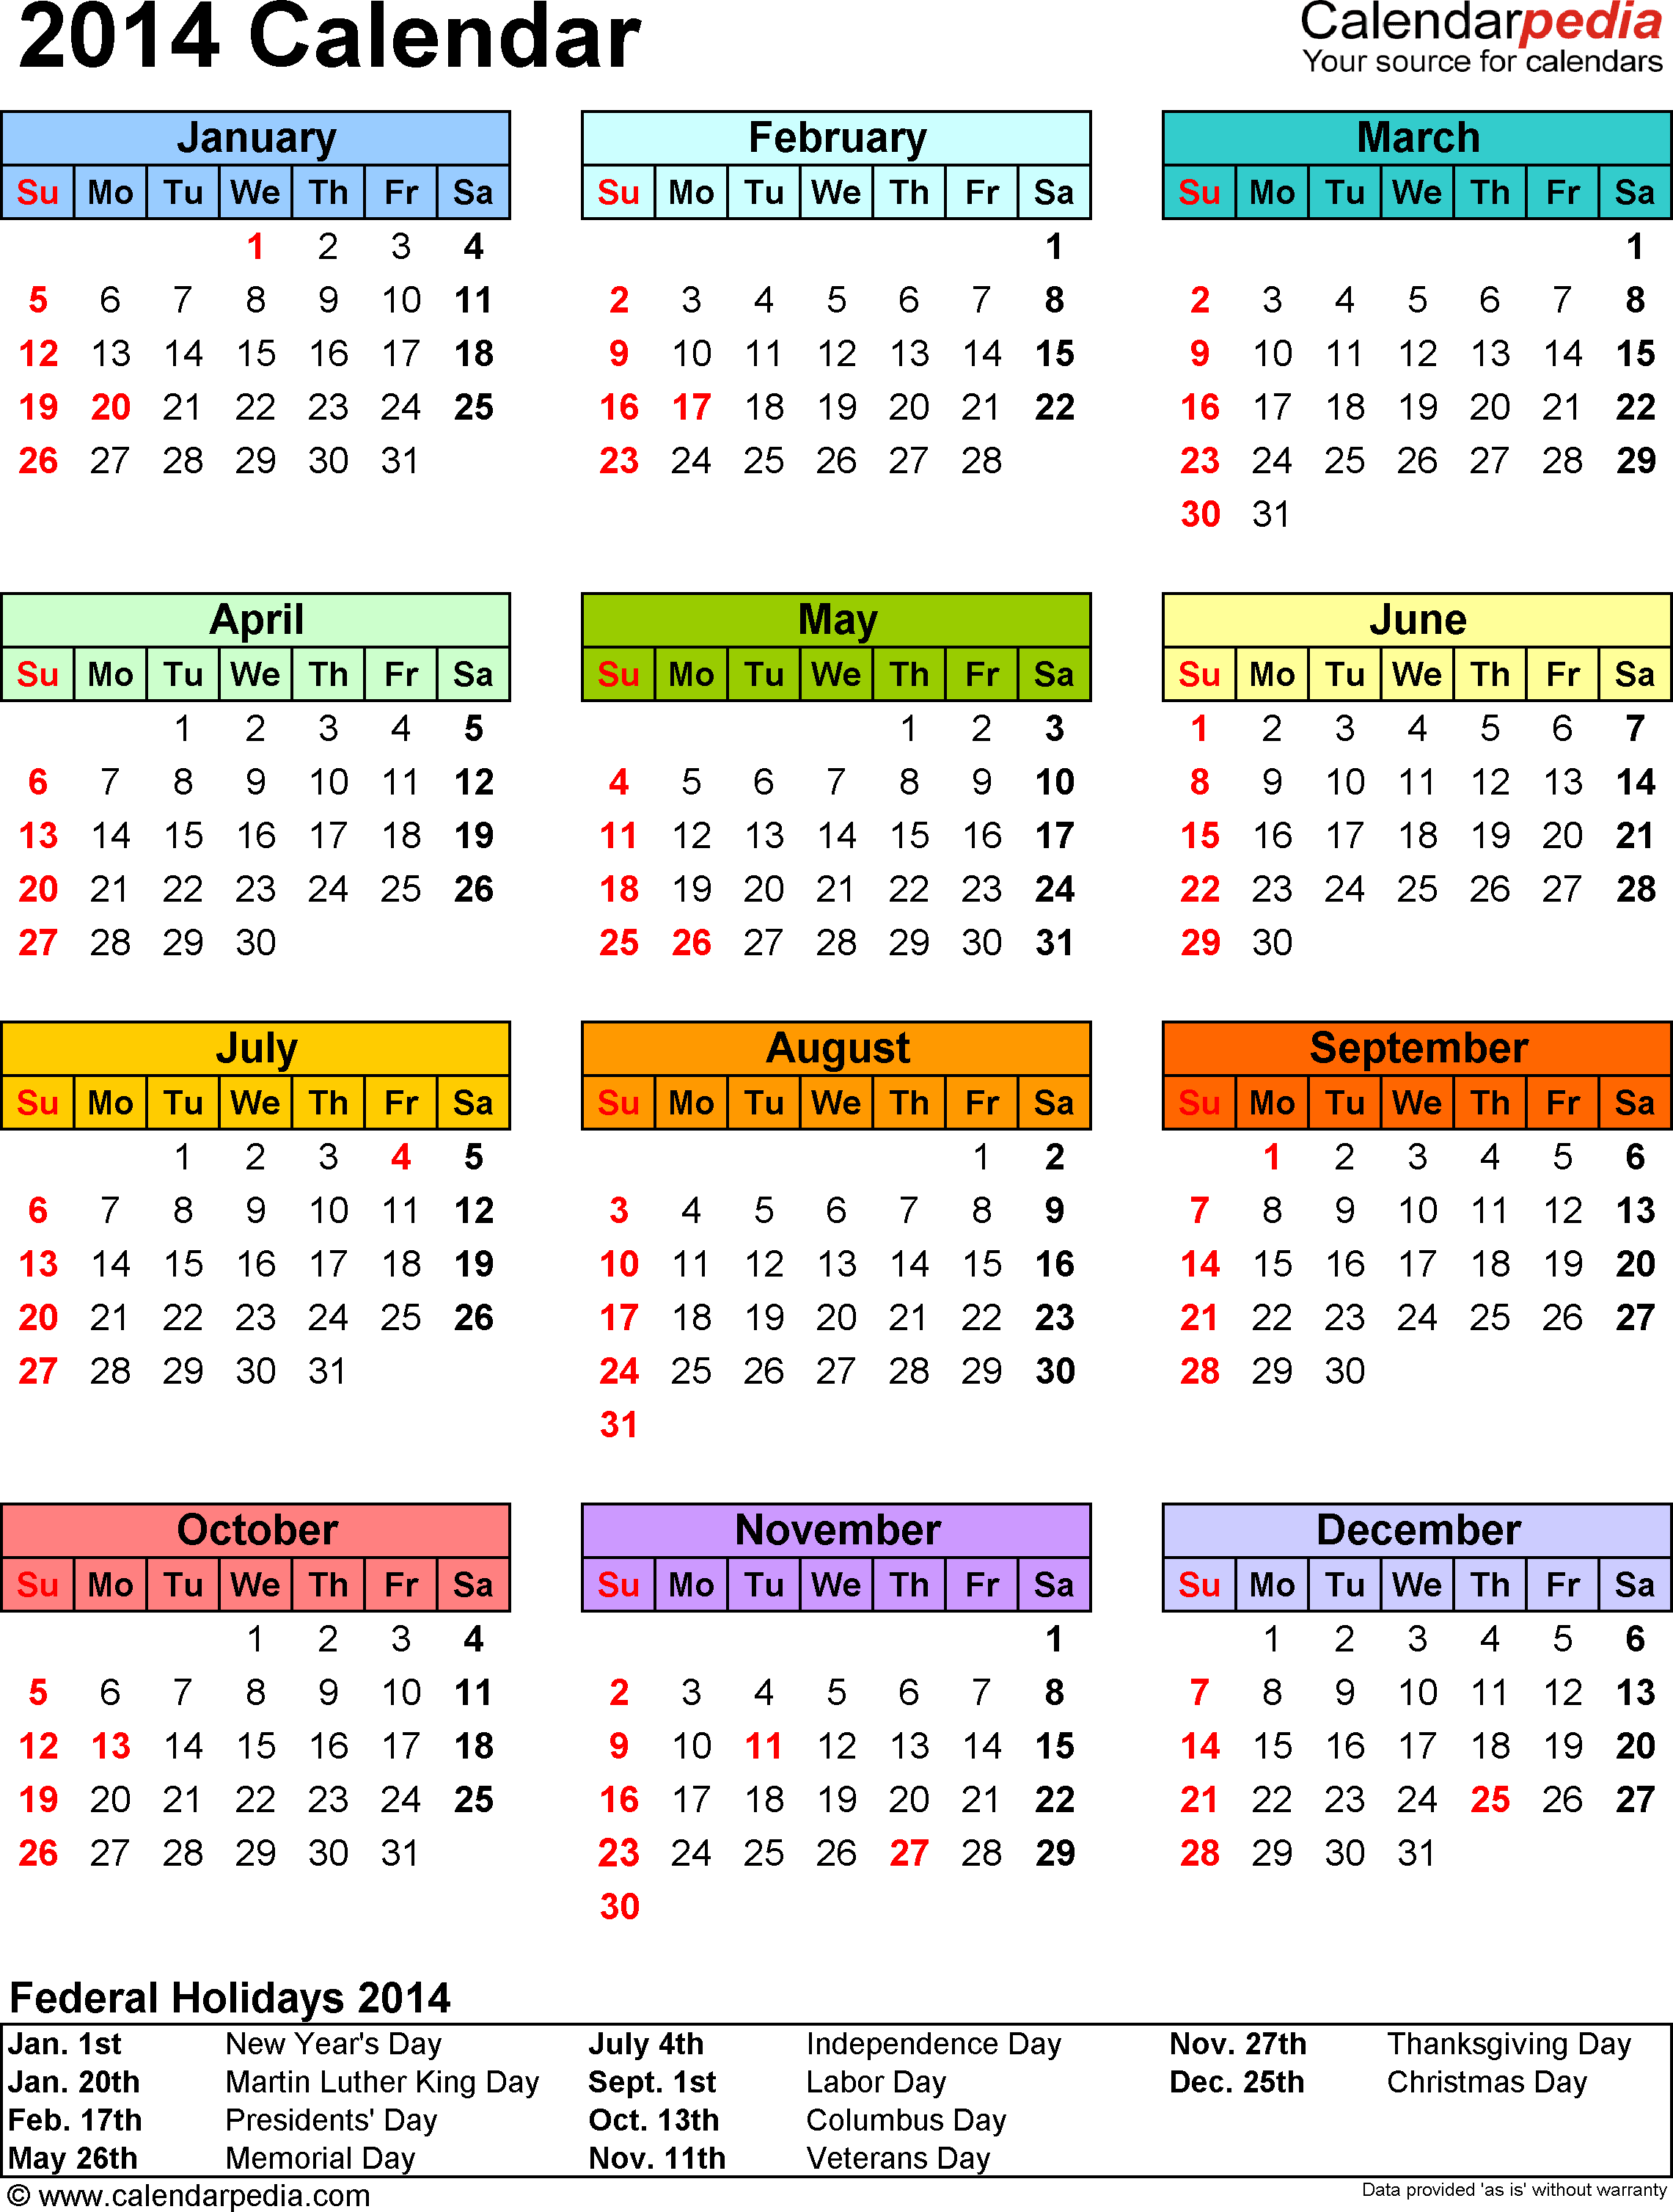 Template 12: 2014 Calendar for PDF, 1 page, portrait orientation, in color